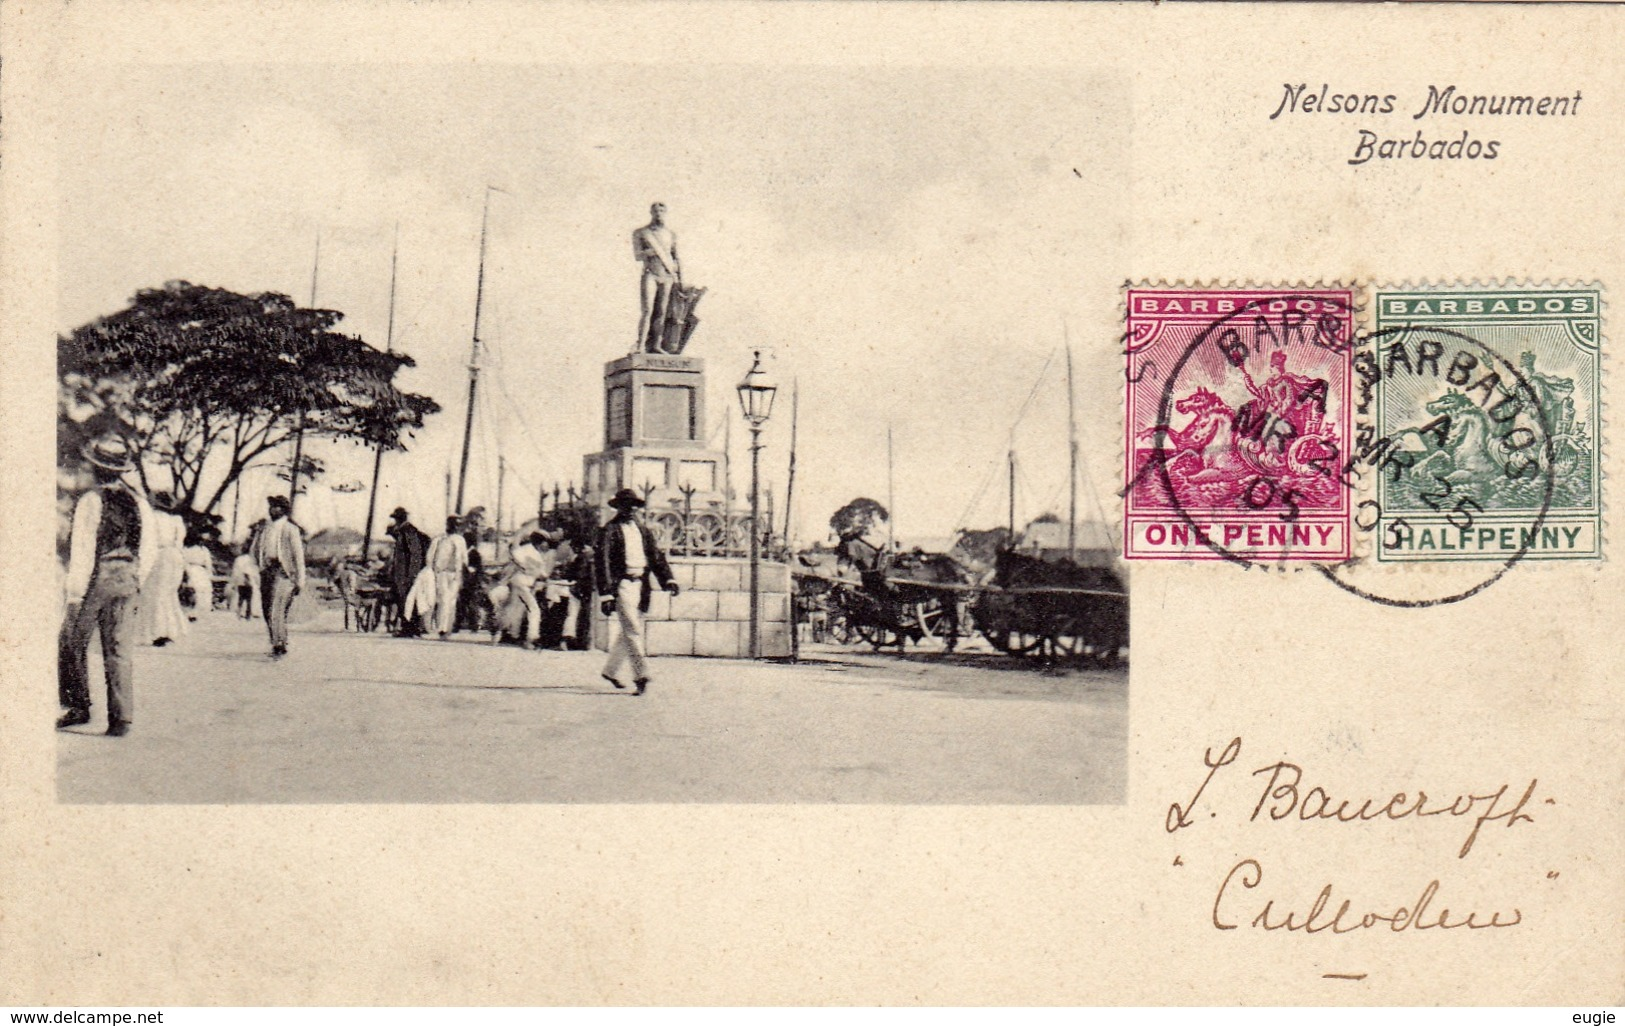 280/ Barbados, Nelsons Monument, 1905 - Barbados